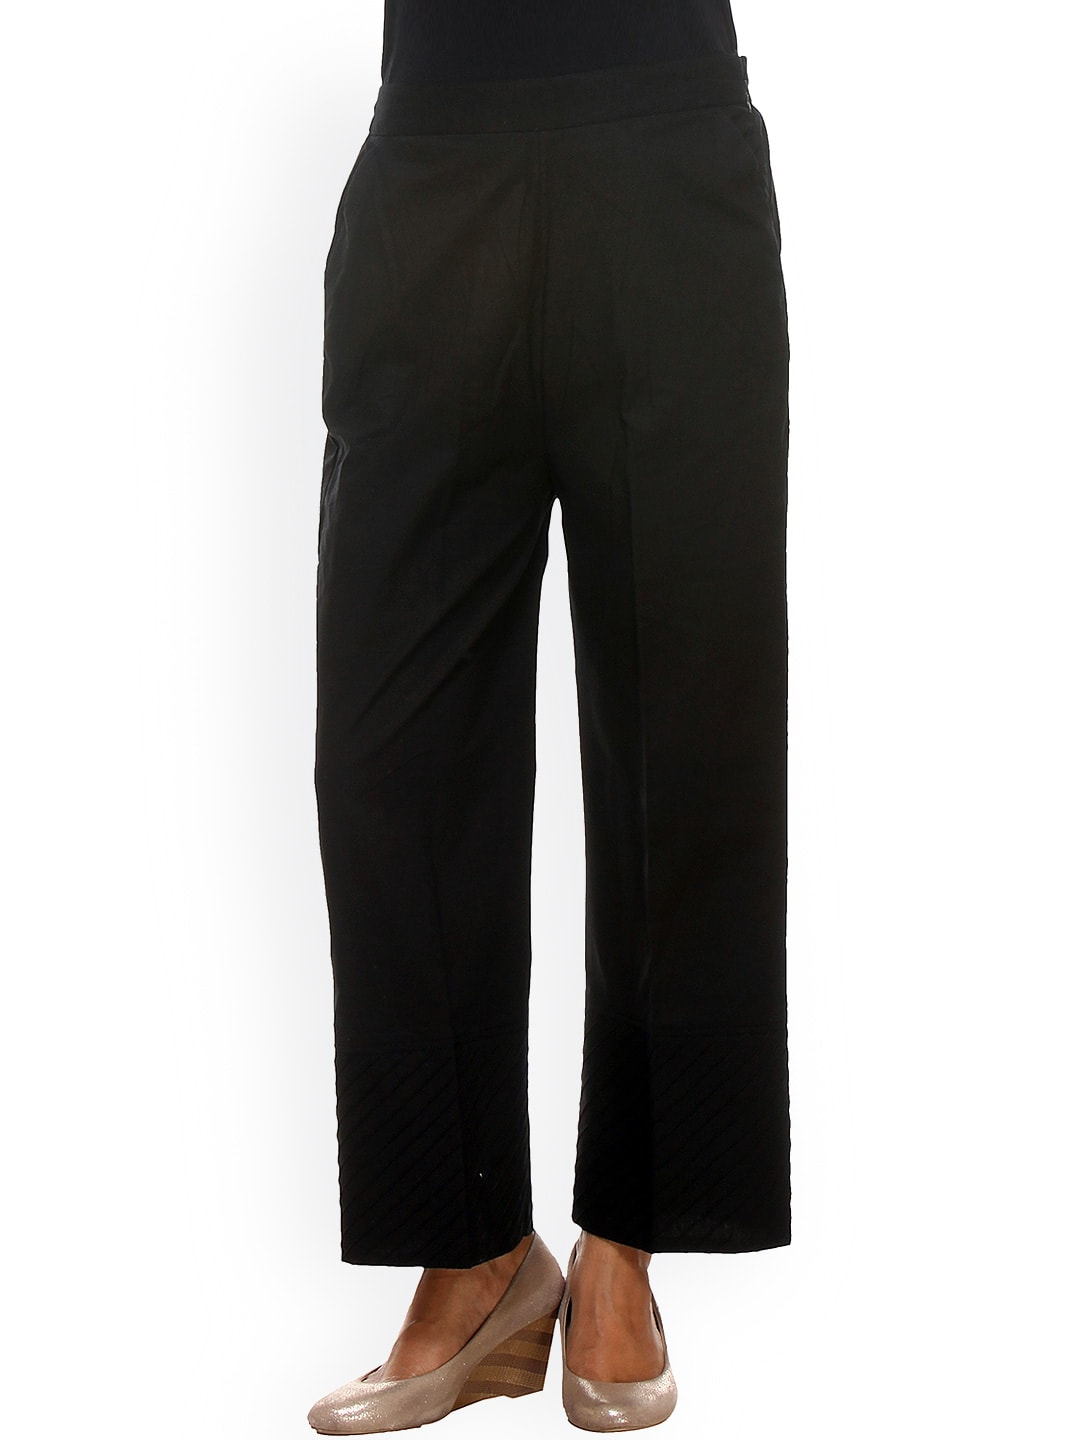 9rasa Black Trousers